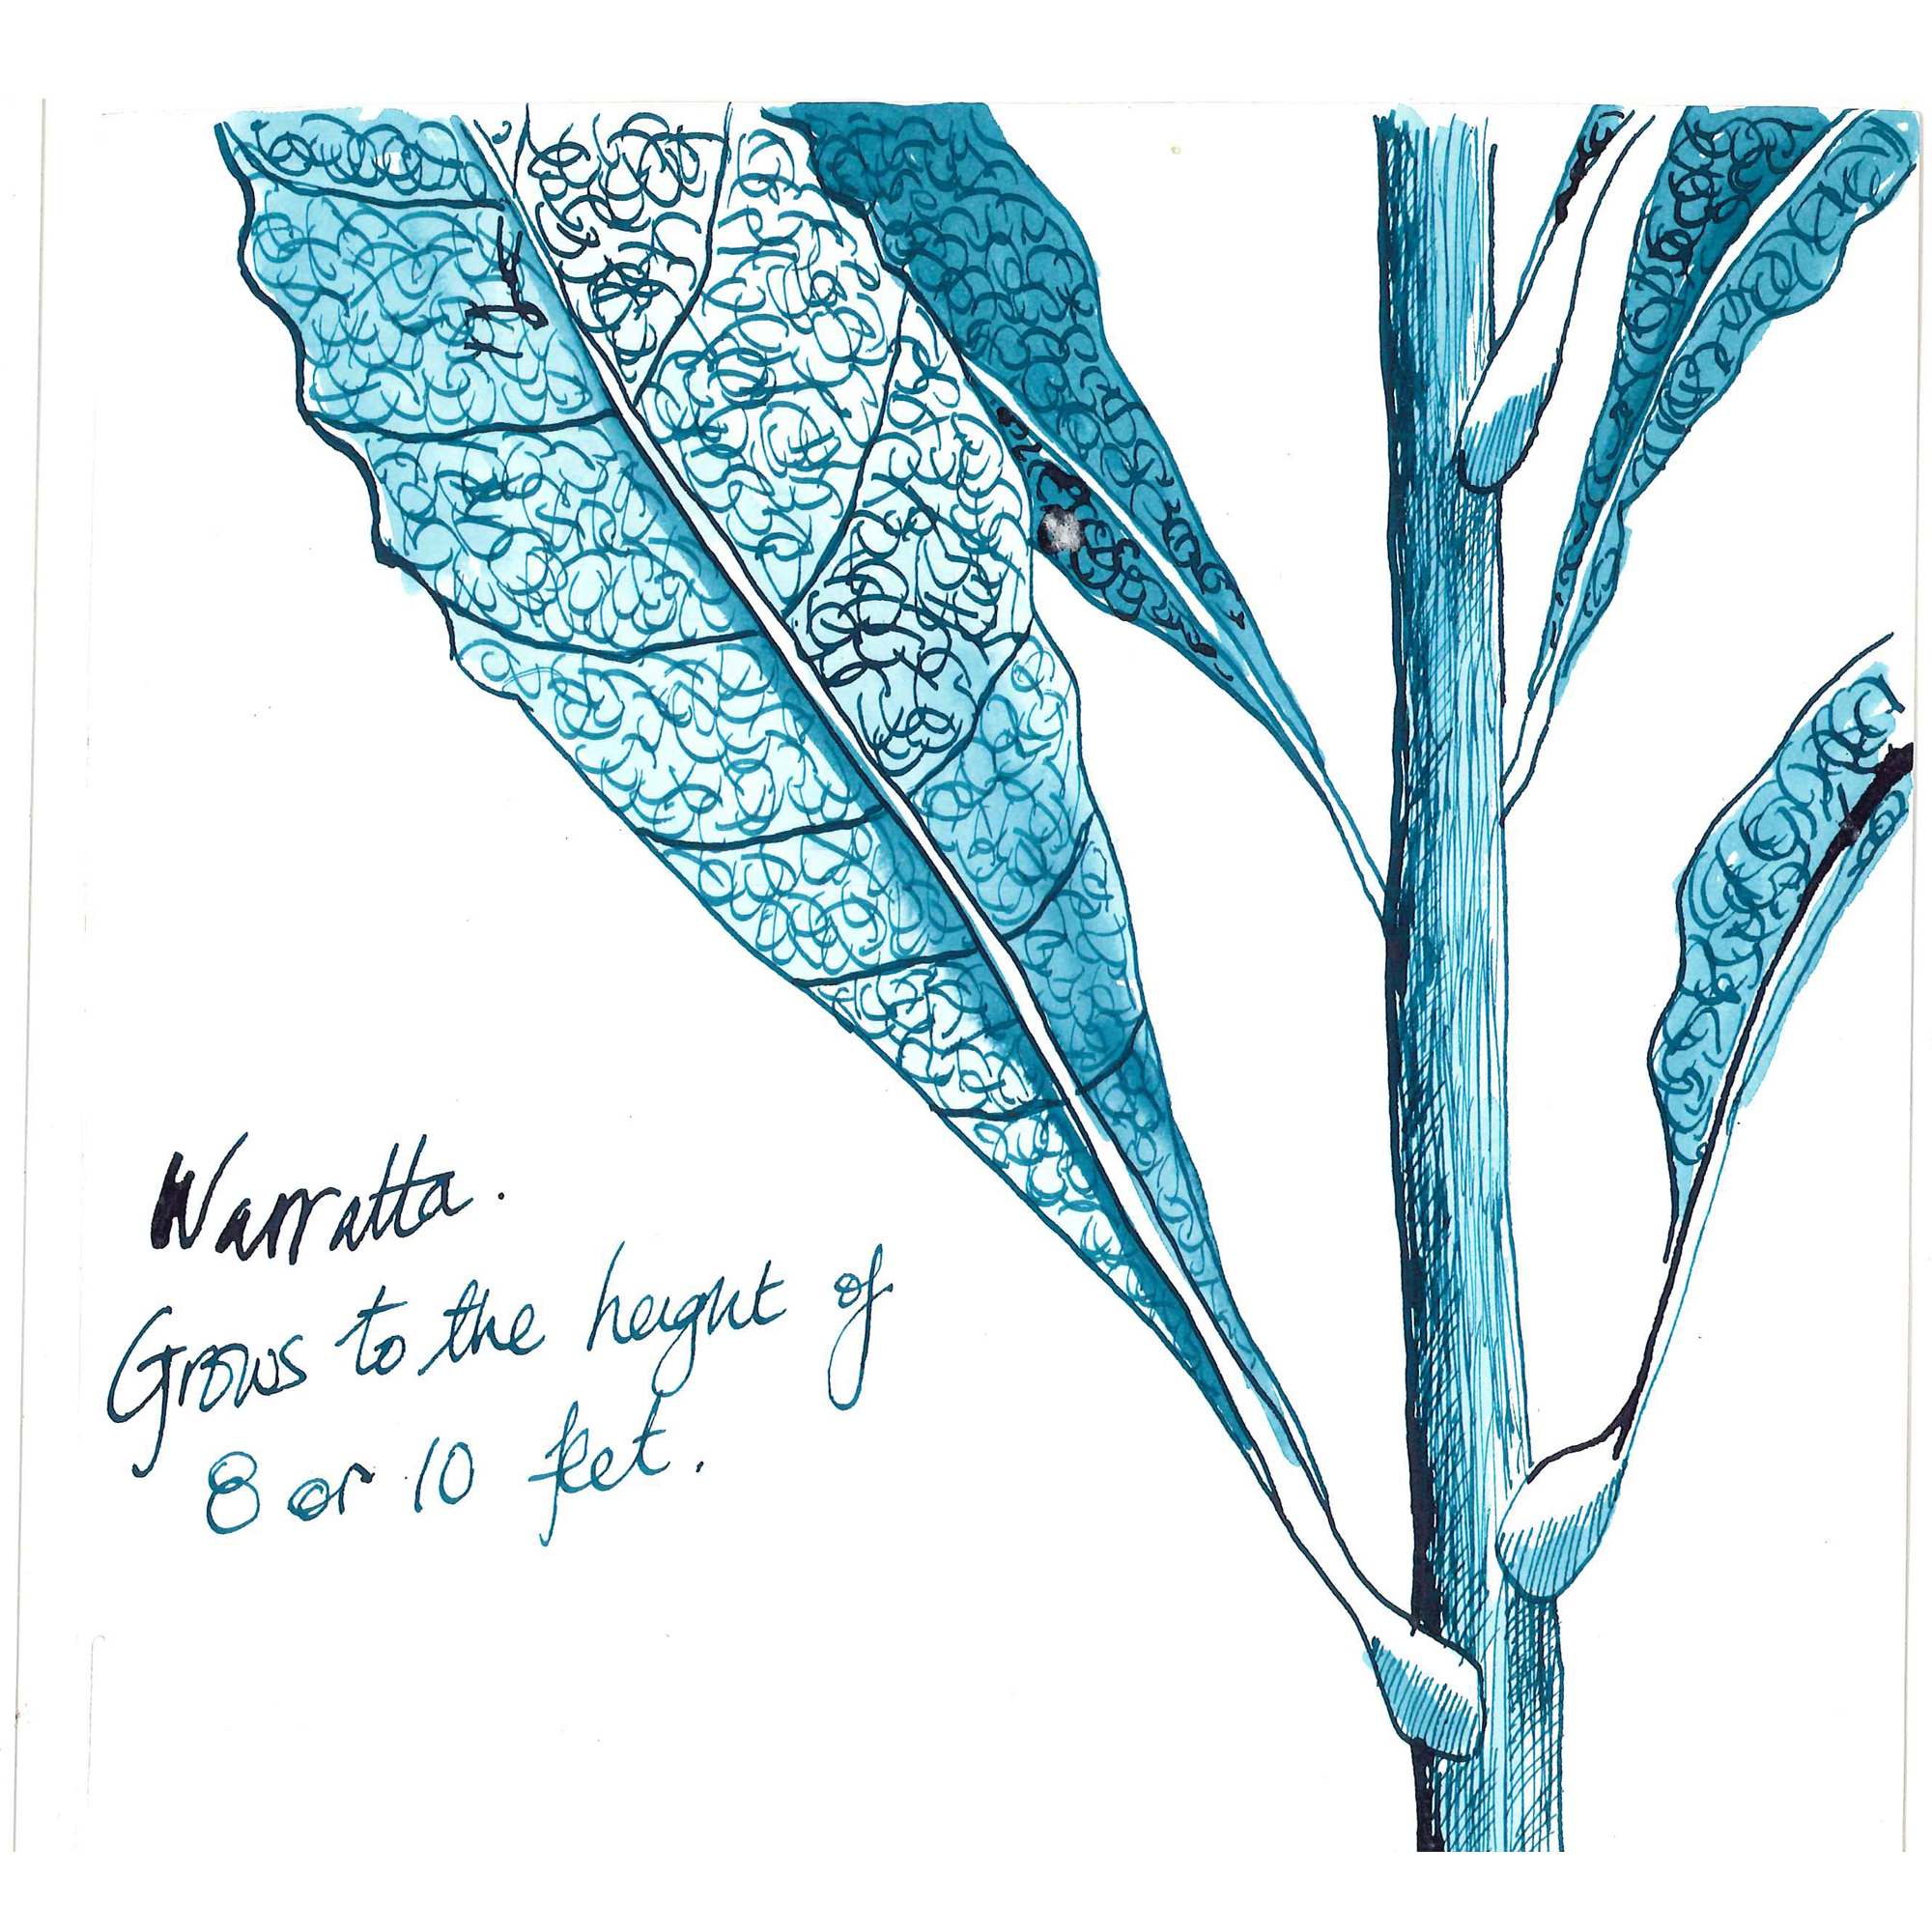 a blue ink sketch of a waratah branch